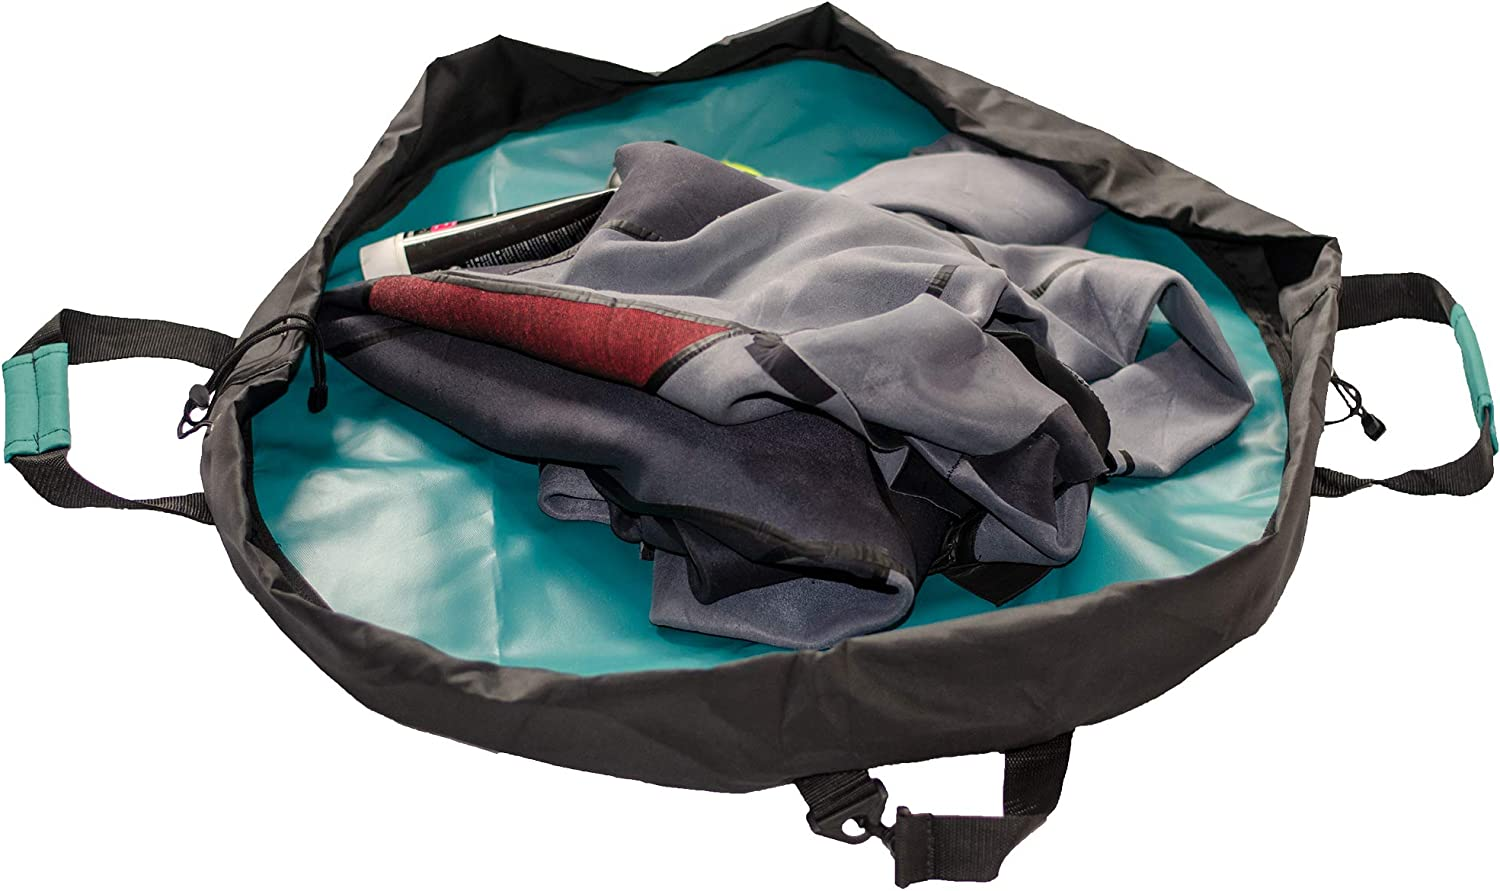 130cm Polyester 90cm SKYHY224 Wetsuit Changing Mat,Waterproof Dry-Bag Wet Bag for Surfers Surf Accessories Surf Poncho Changing Robe with Especially Designed Handles /& Pocket 50cm